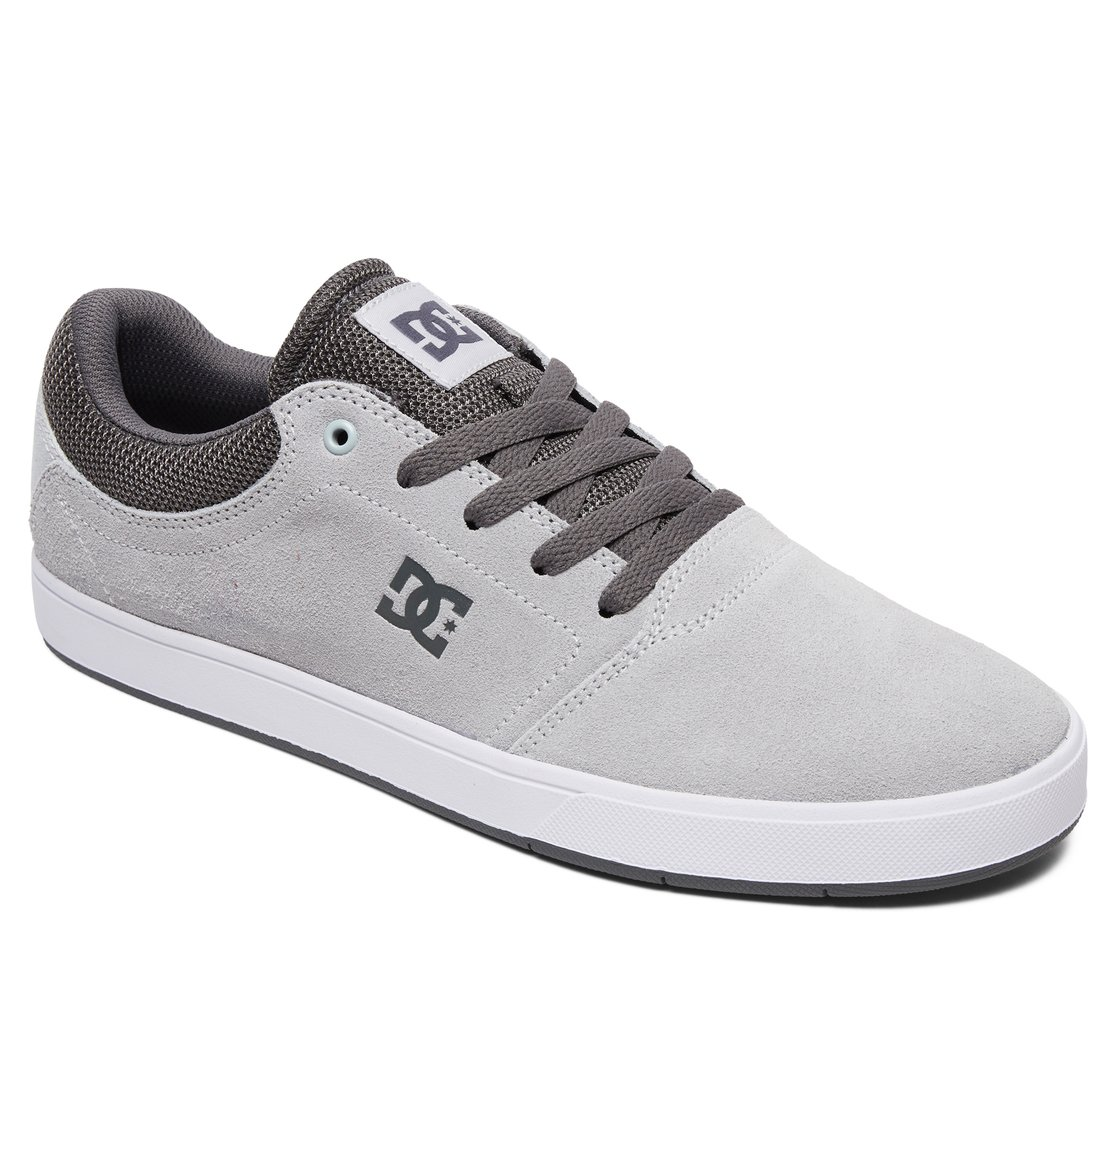 Chaussures Adys100029 Shoes crise Dc de ™ rAn46rtxqw